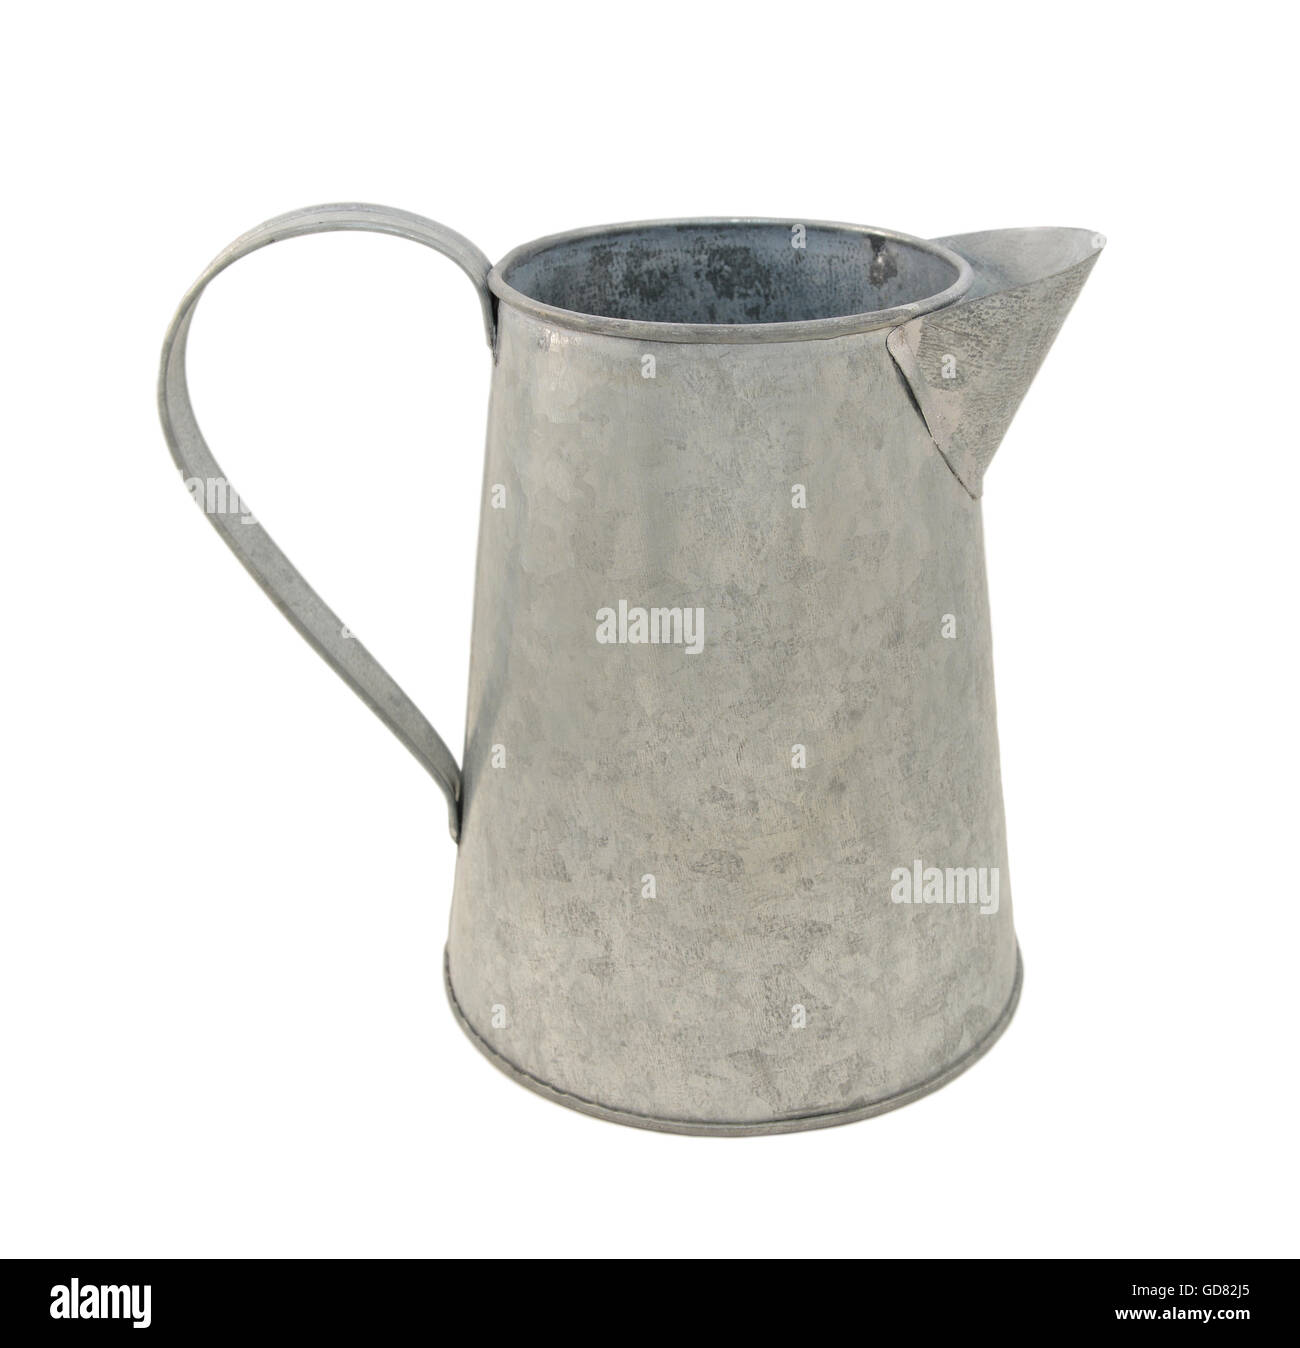 Empty metal pitcher, isolated on a white background Stock Photo